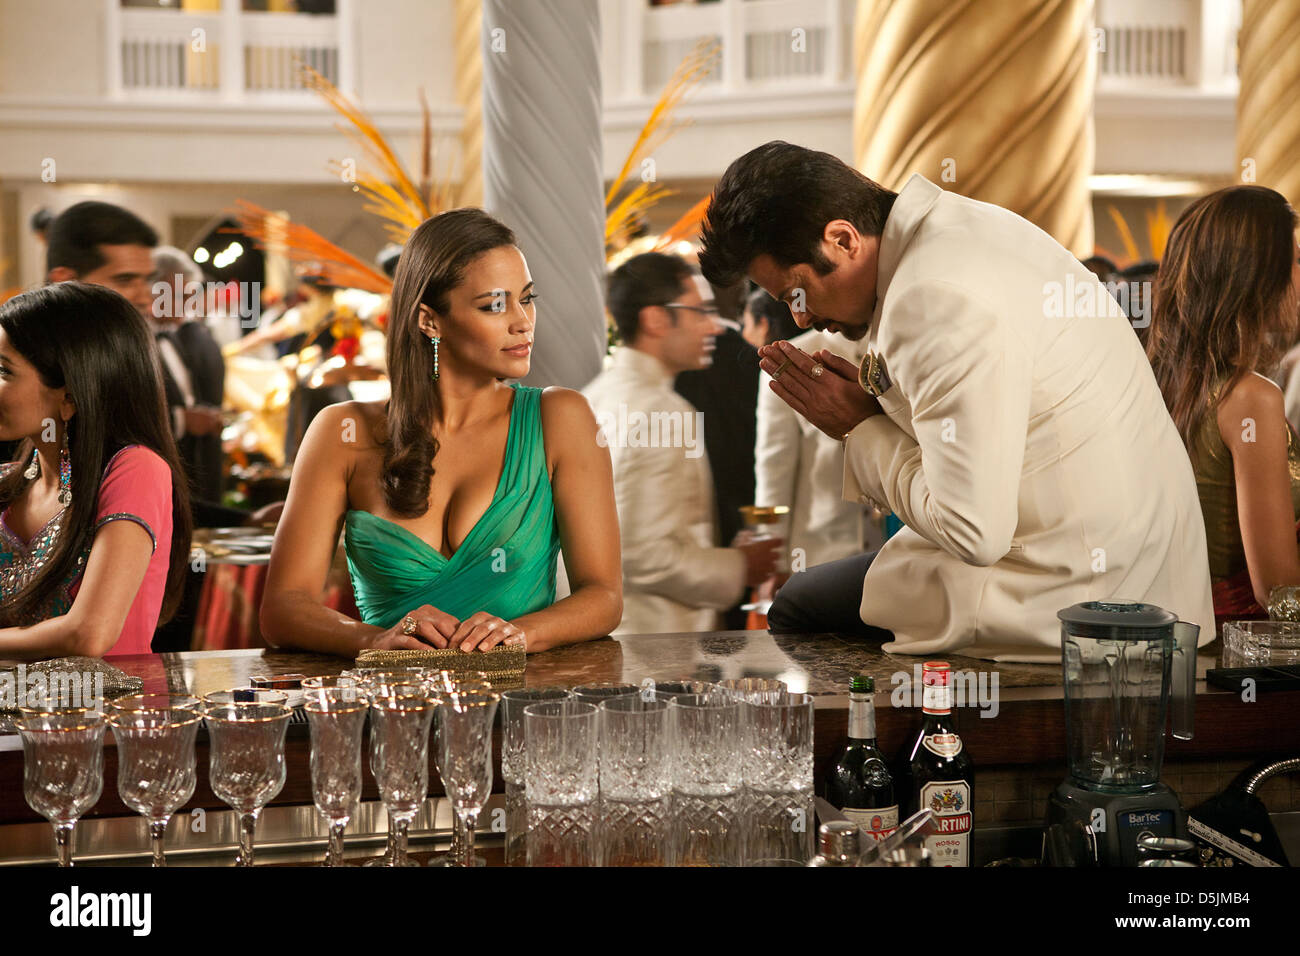 Paula Patton Anil Kapoor Mission Impossible Ghost Protocol 2011 Stock Photo Alamy